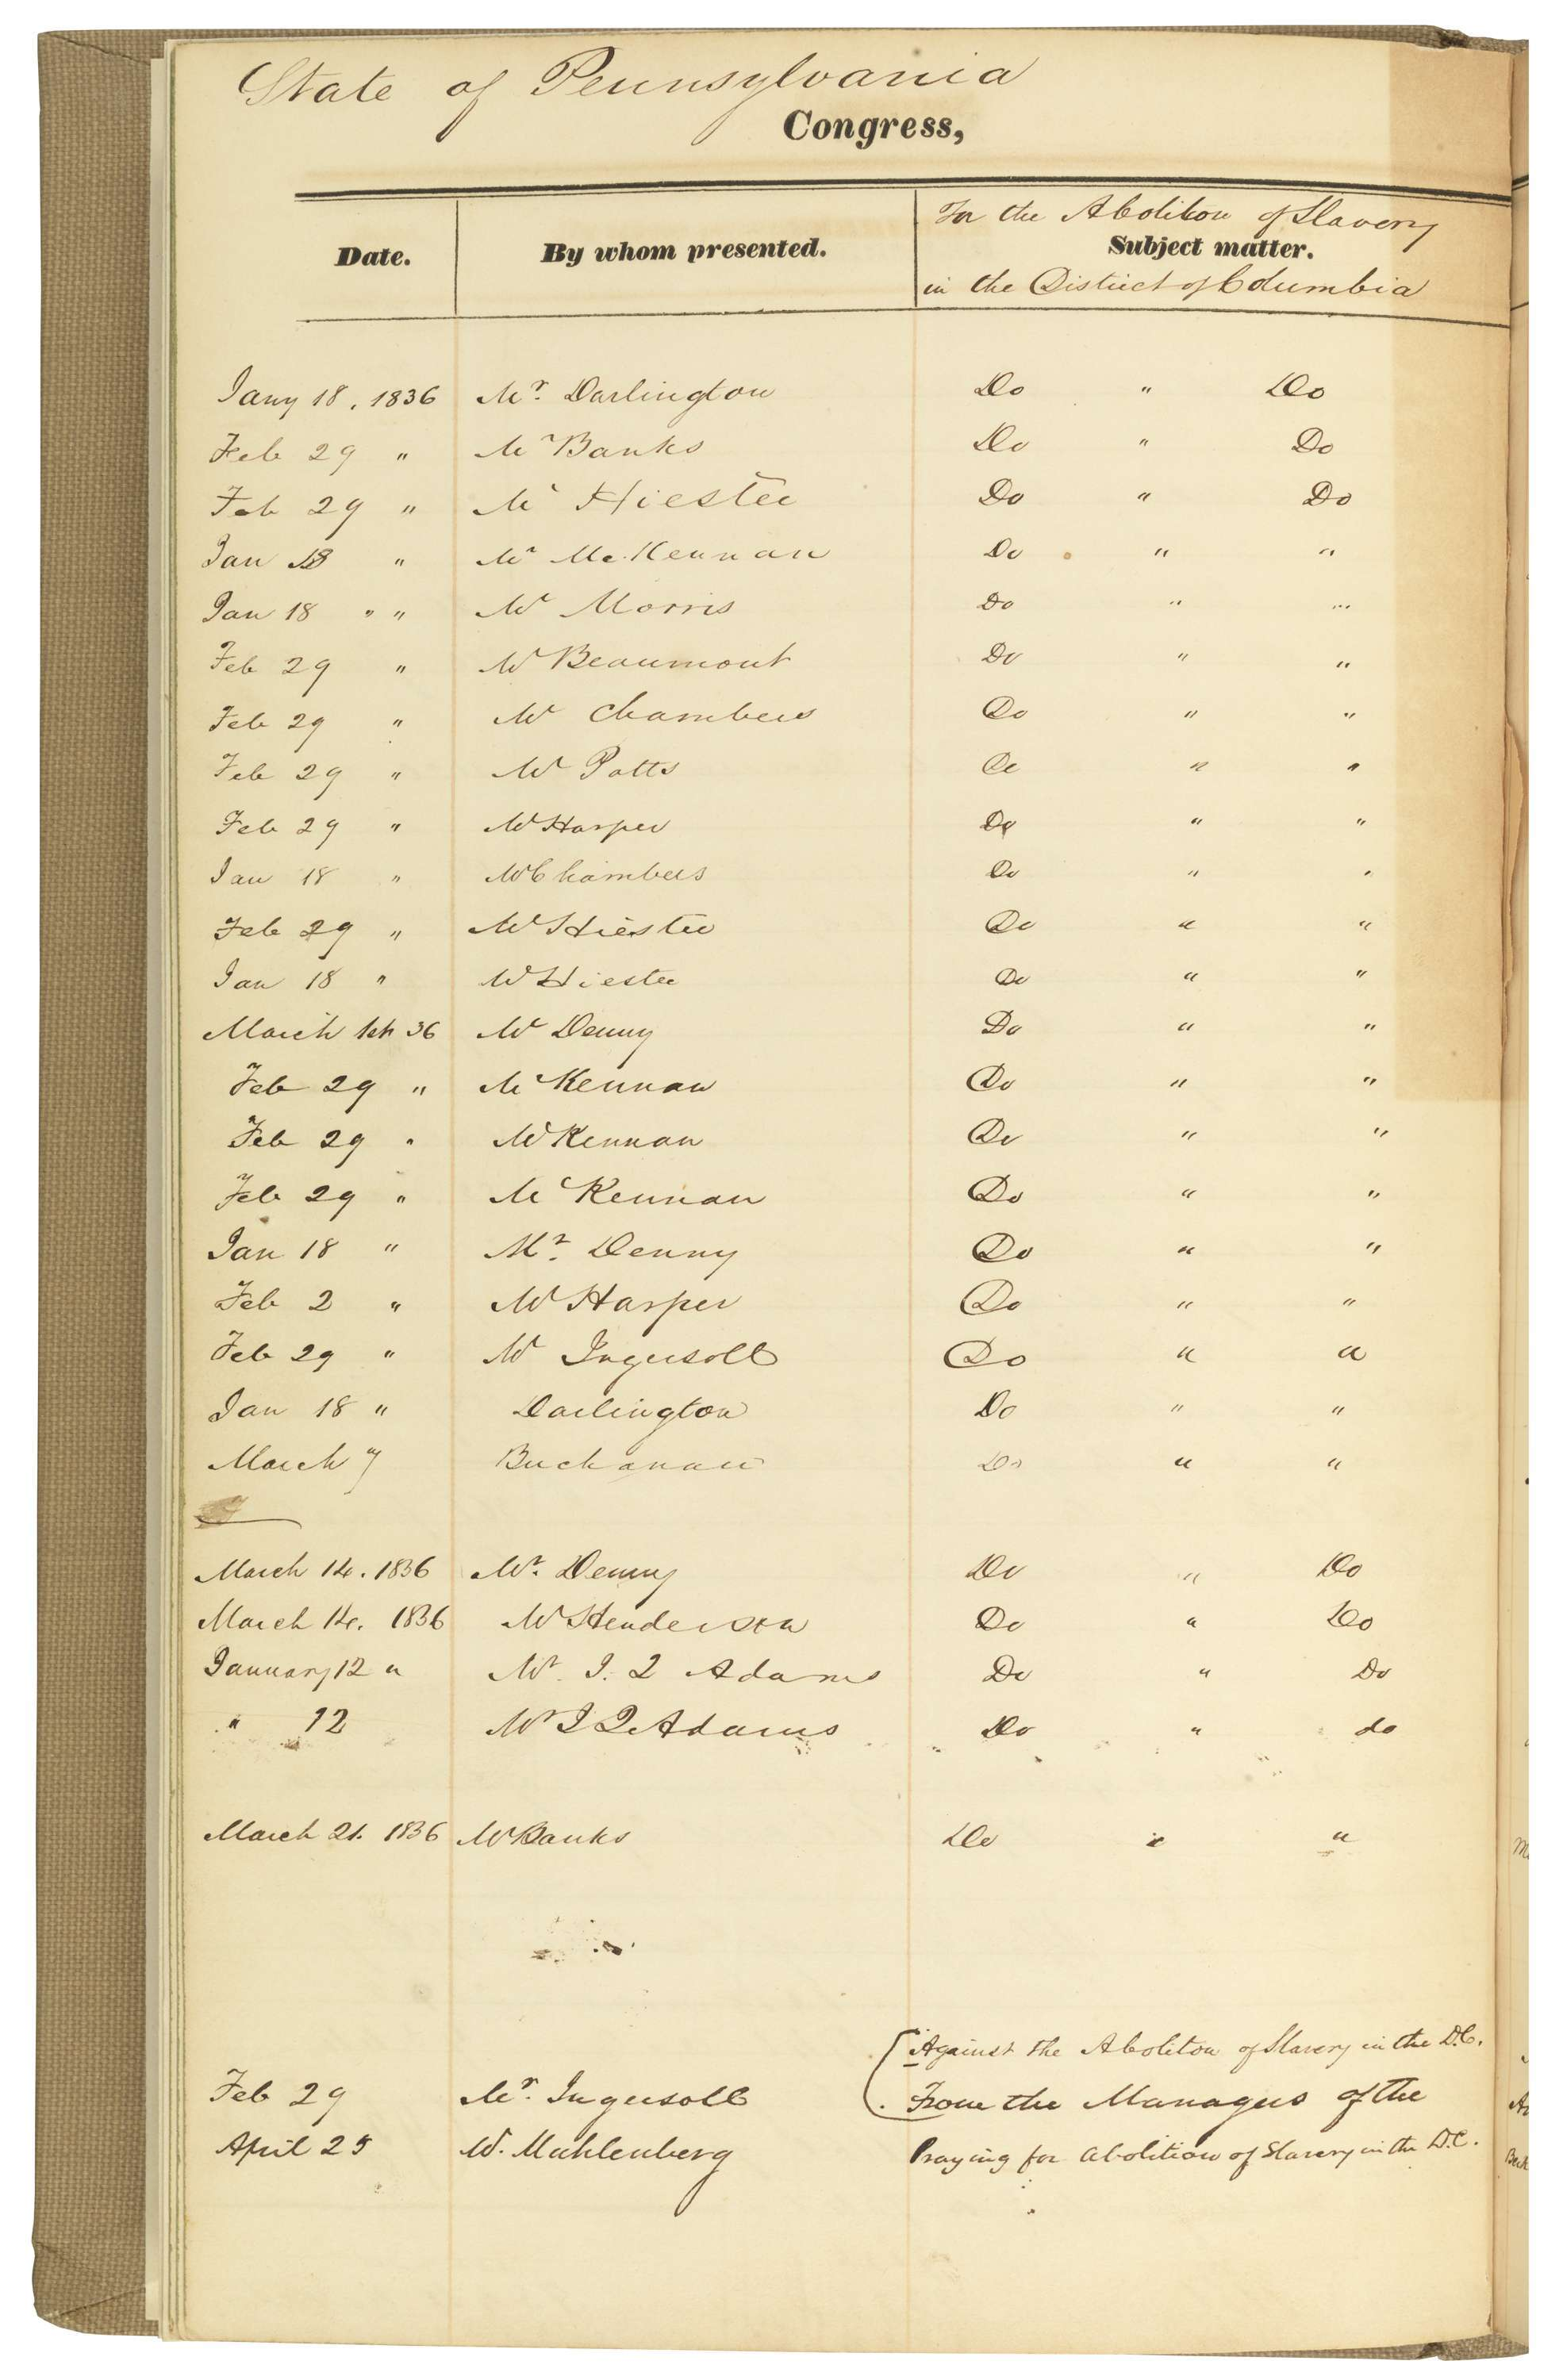 Selection from Ledger Listing Anti-Slavery Petitions